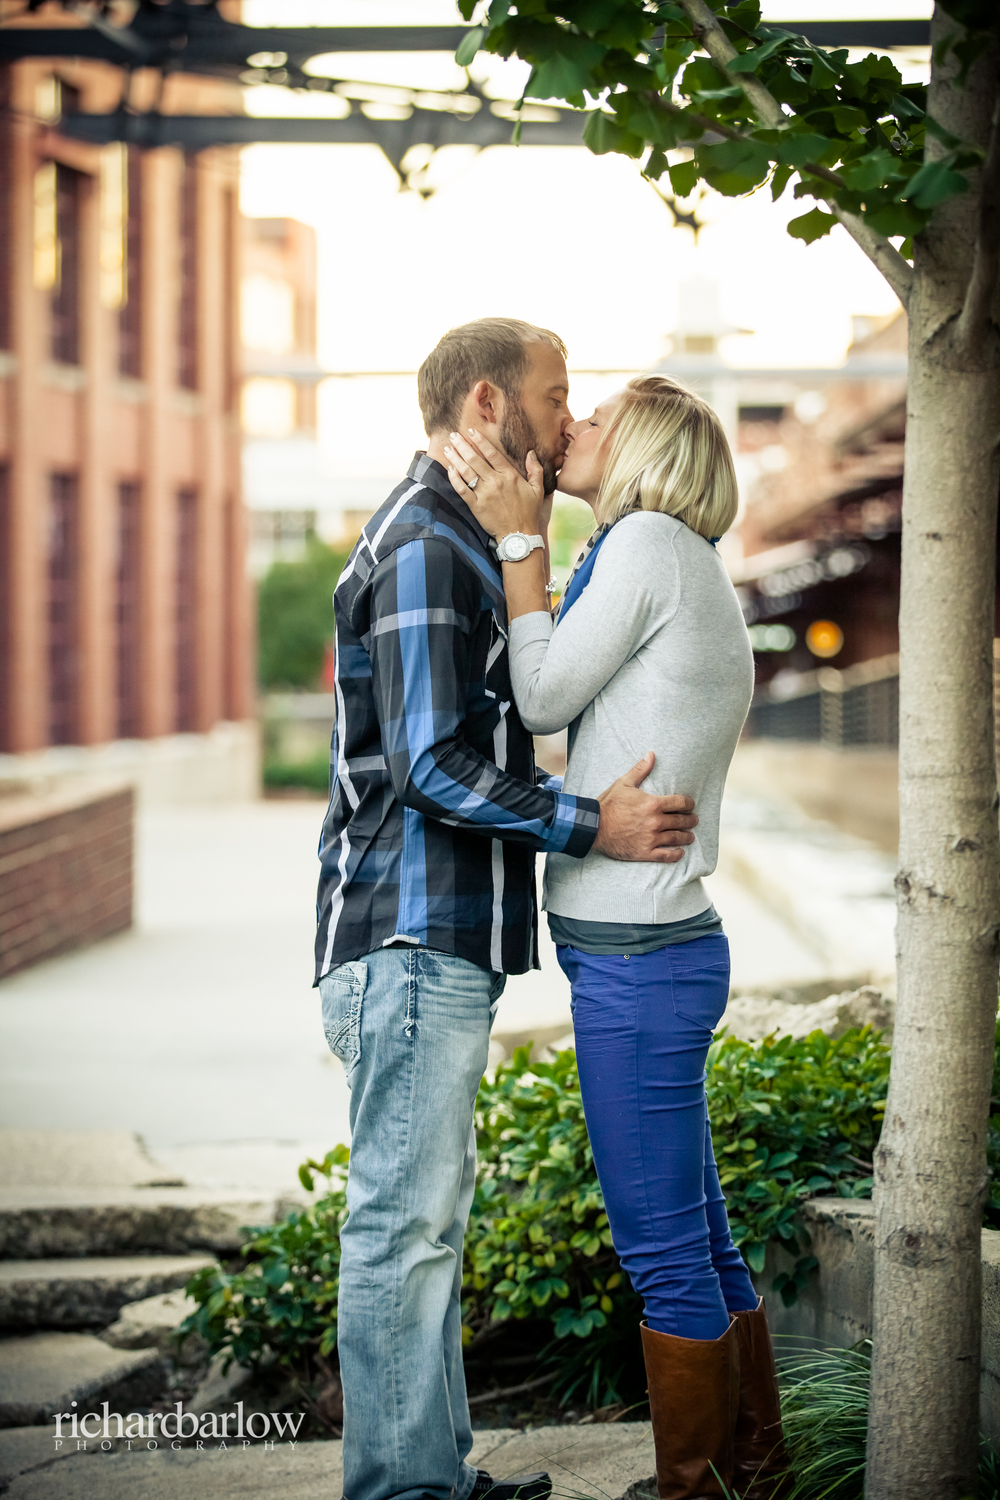 richard barlow photography - Mike and Renee Engagement Session NC-17.jpg